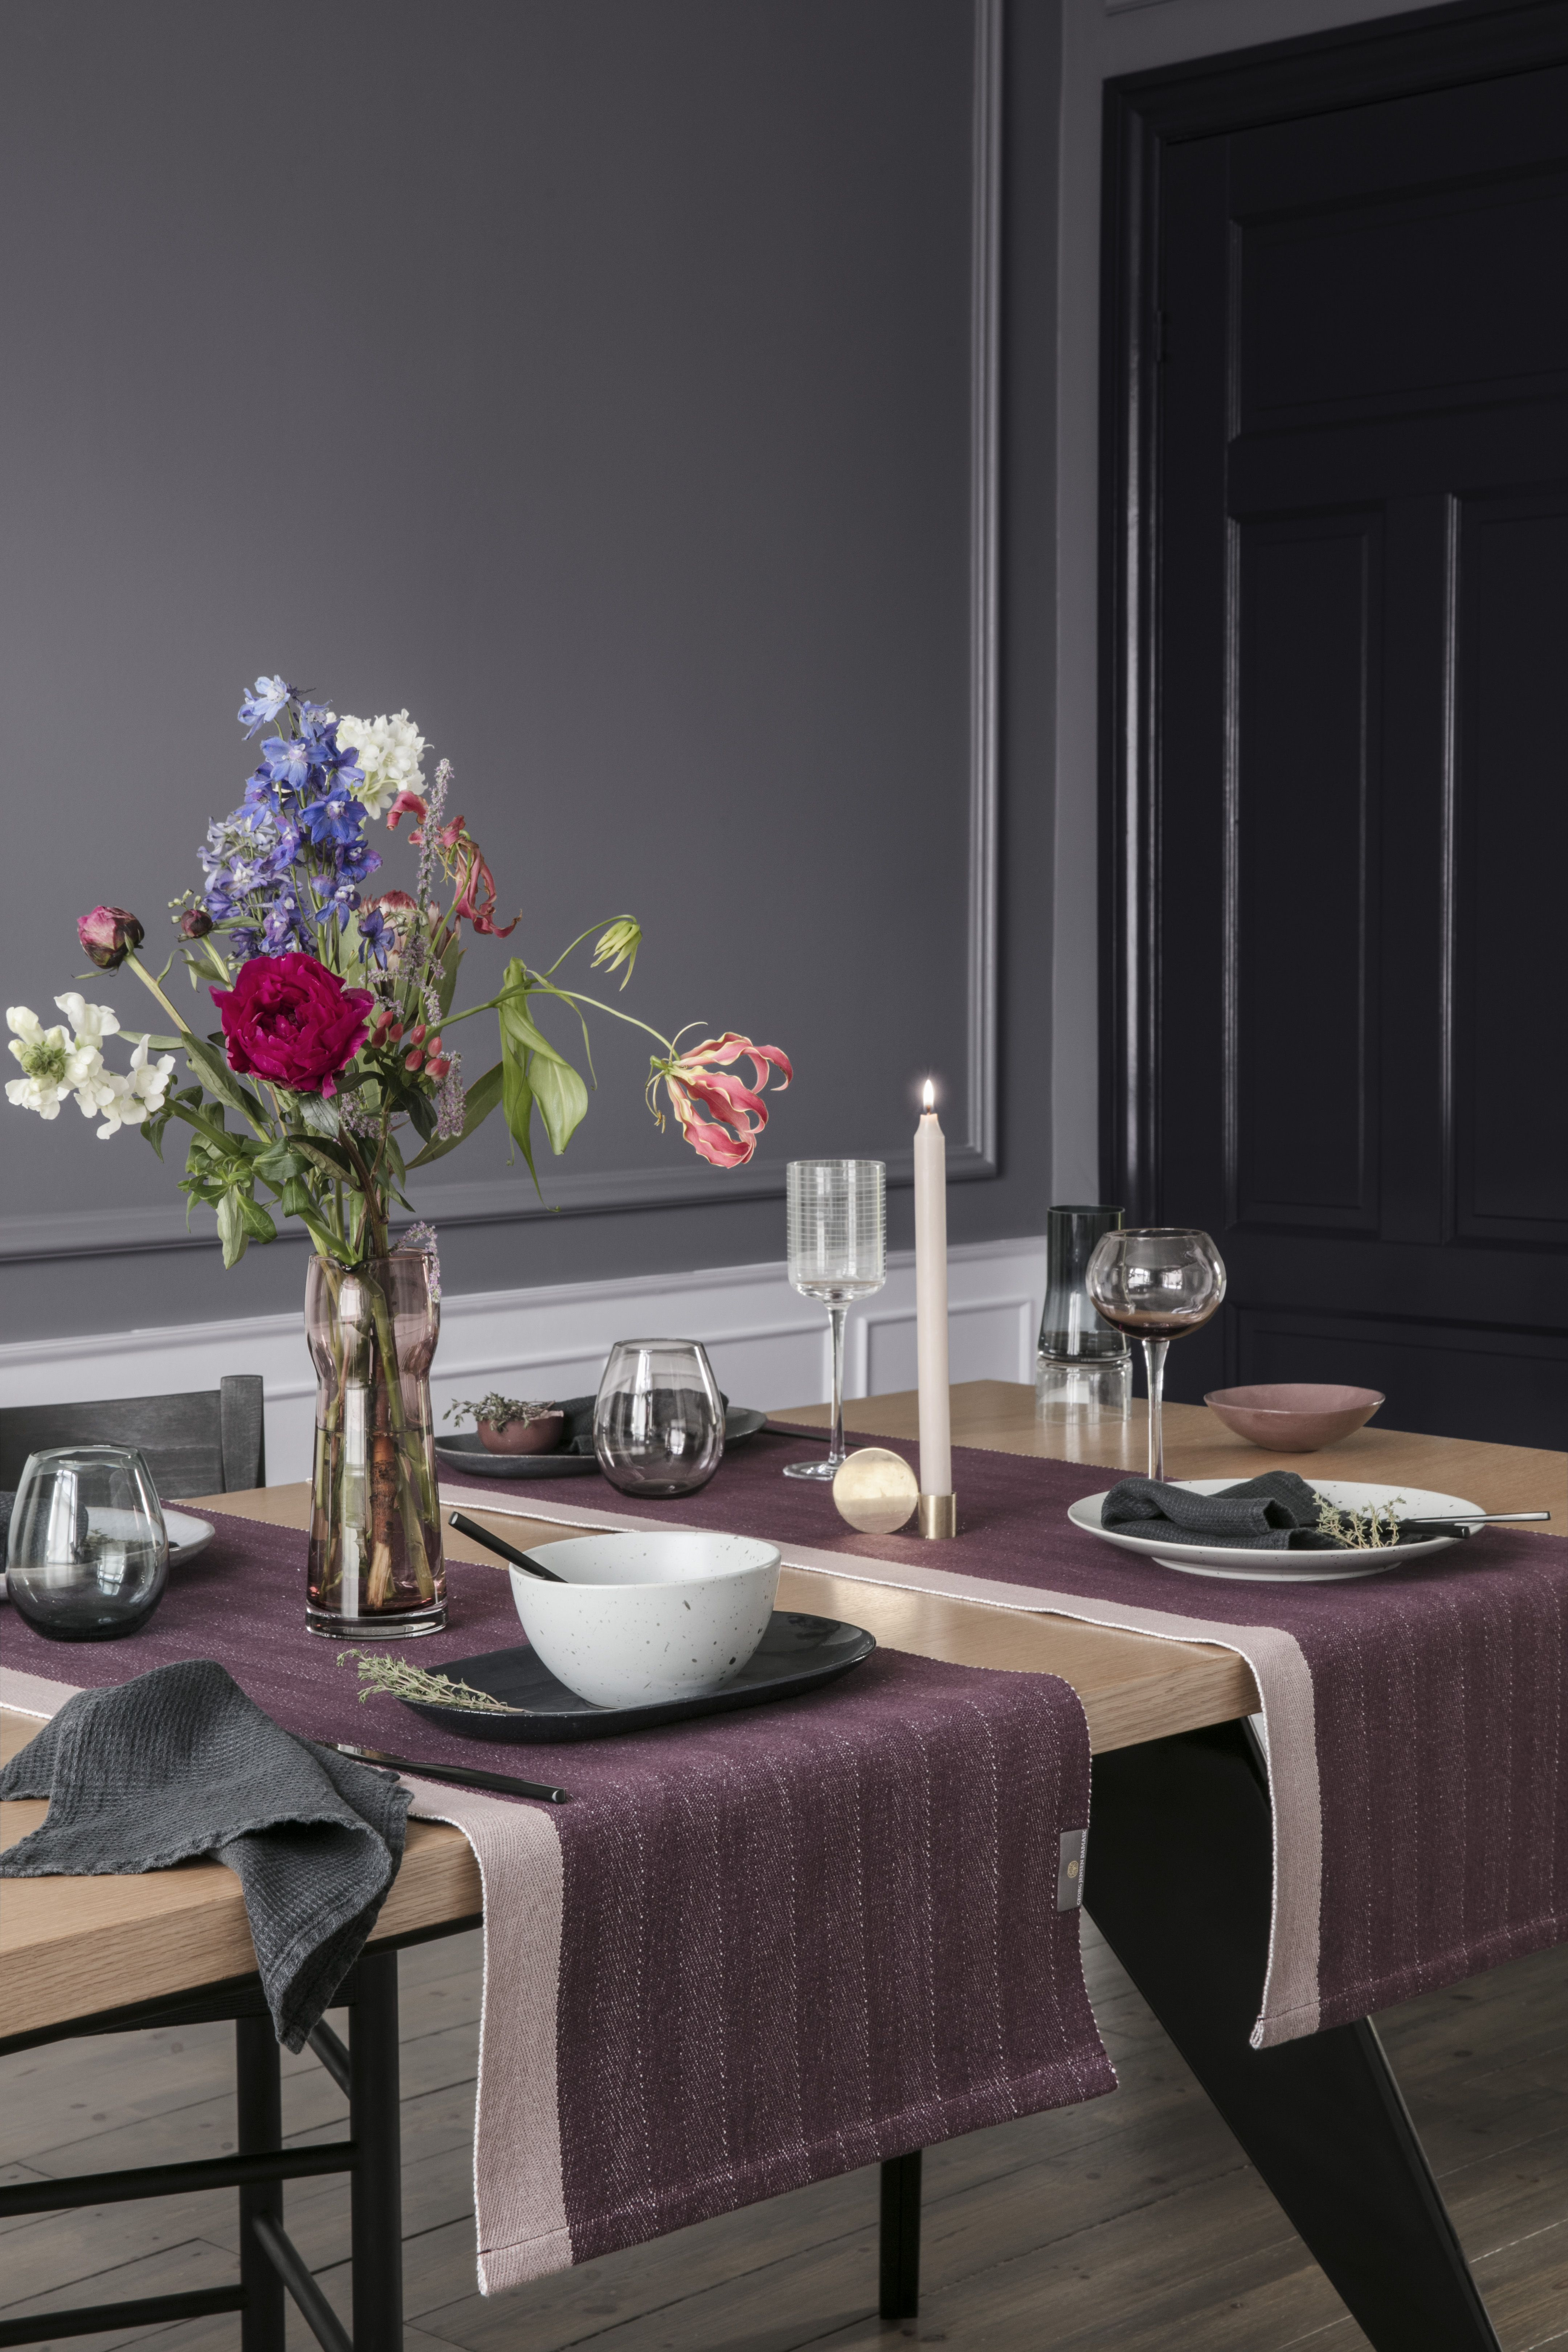 A Solid Table Runner In A Beautiful Herringbone The Table